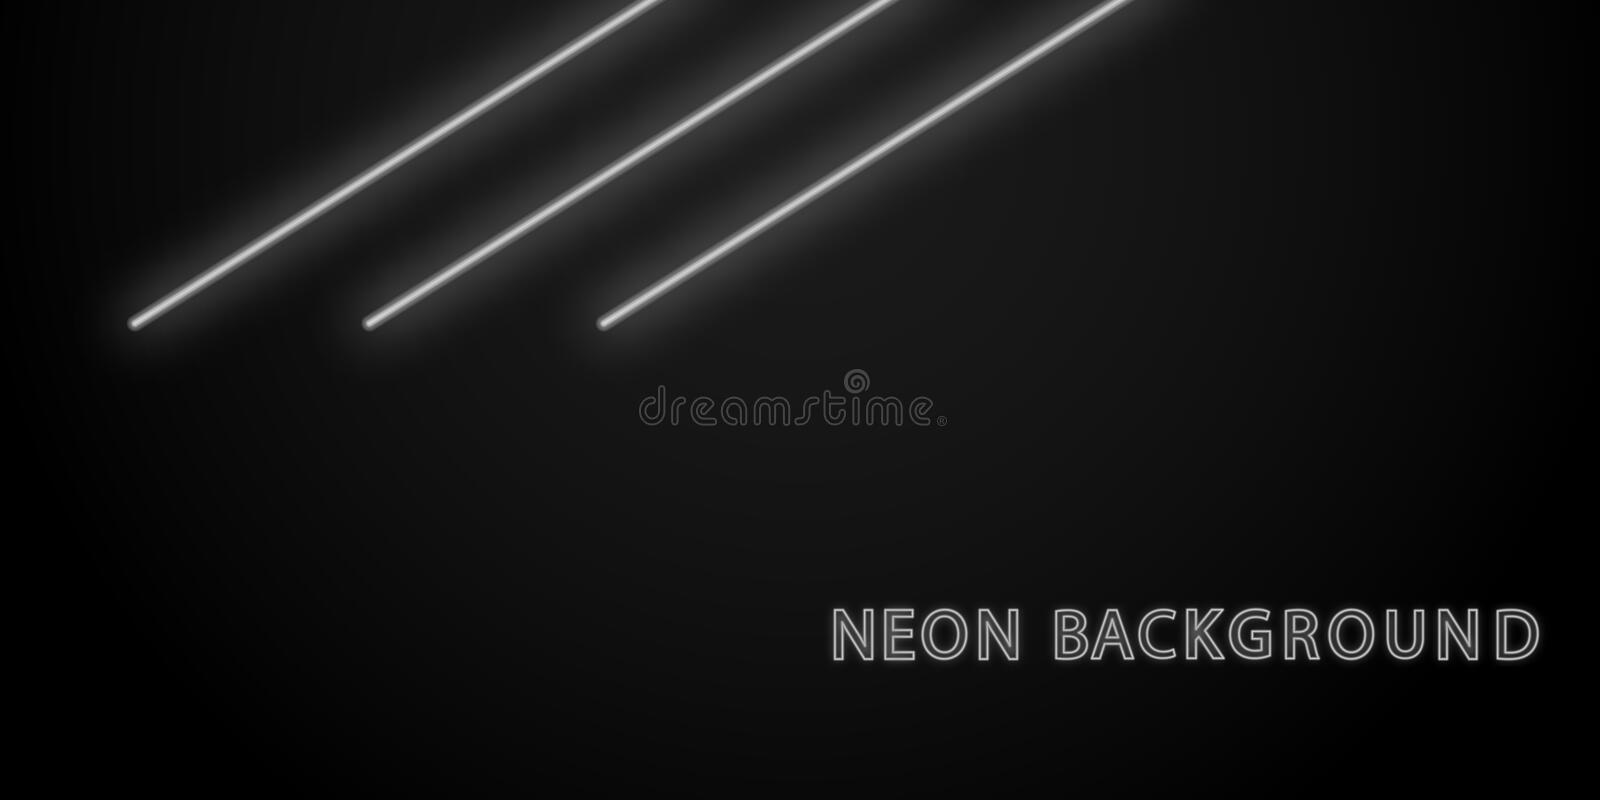 Neon black line light white background illustration. Element of neon background vector illustration